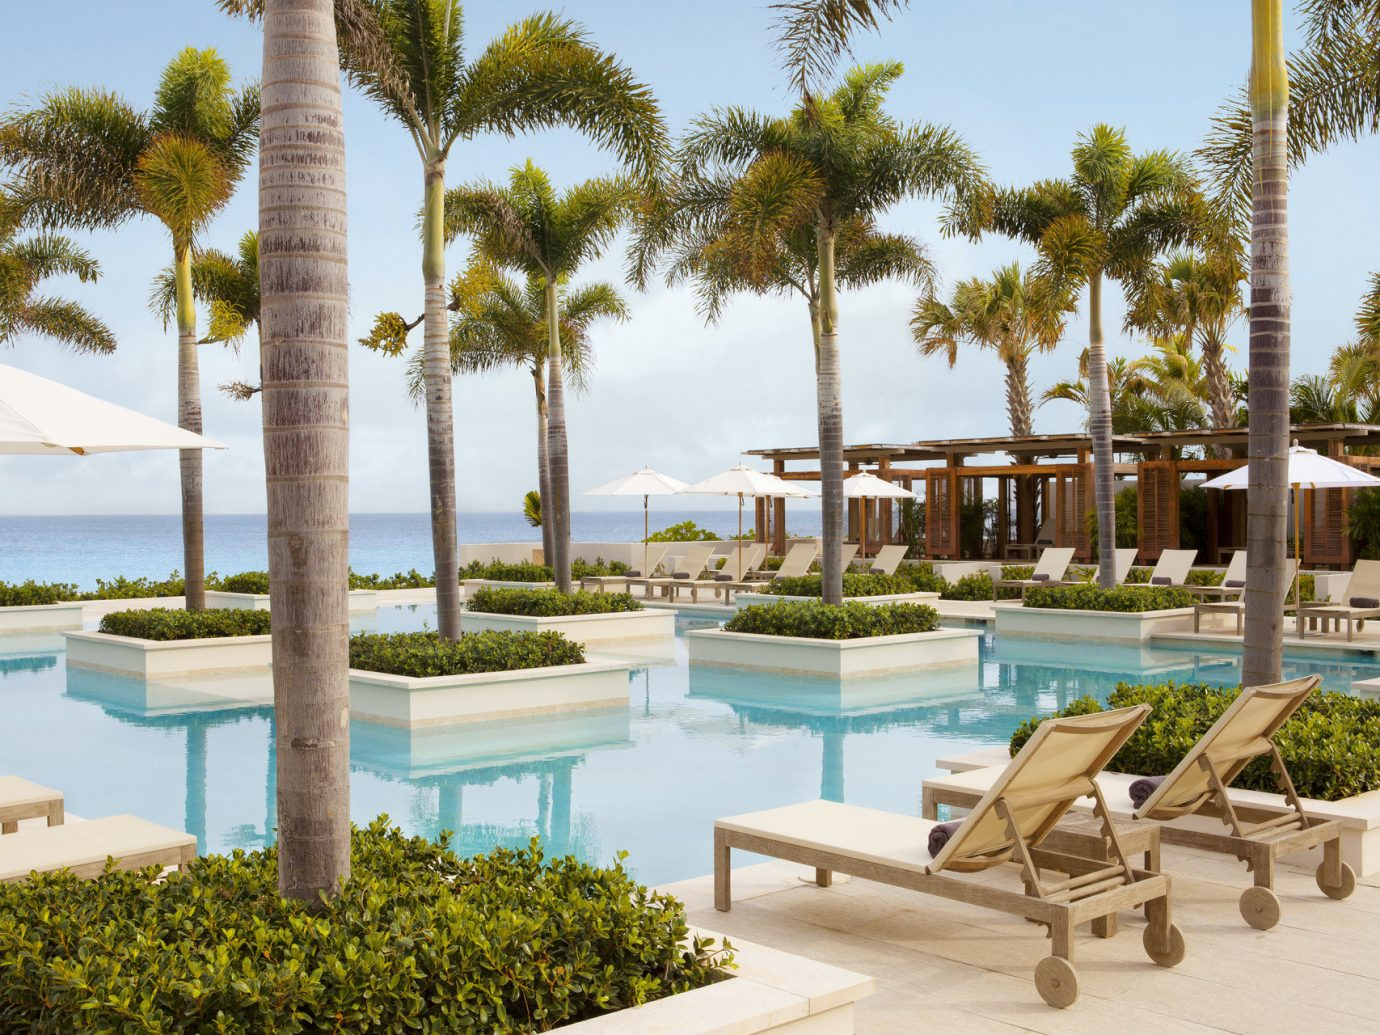 Trip Ideas tree sky outdoor leisure property Resort swimming pool condominium estate vacation plant arecales palm Villa home park caribbean real estate palm family